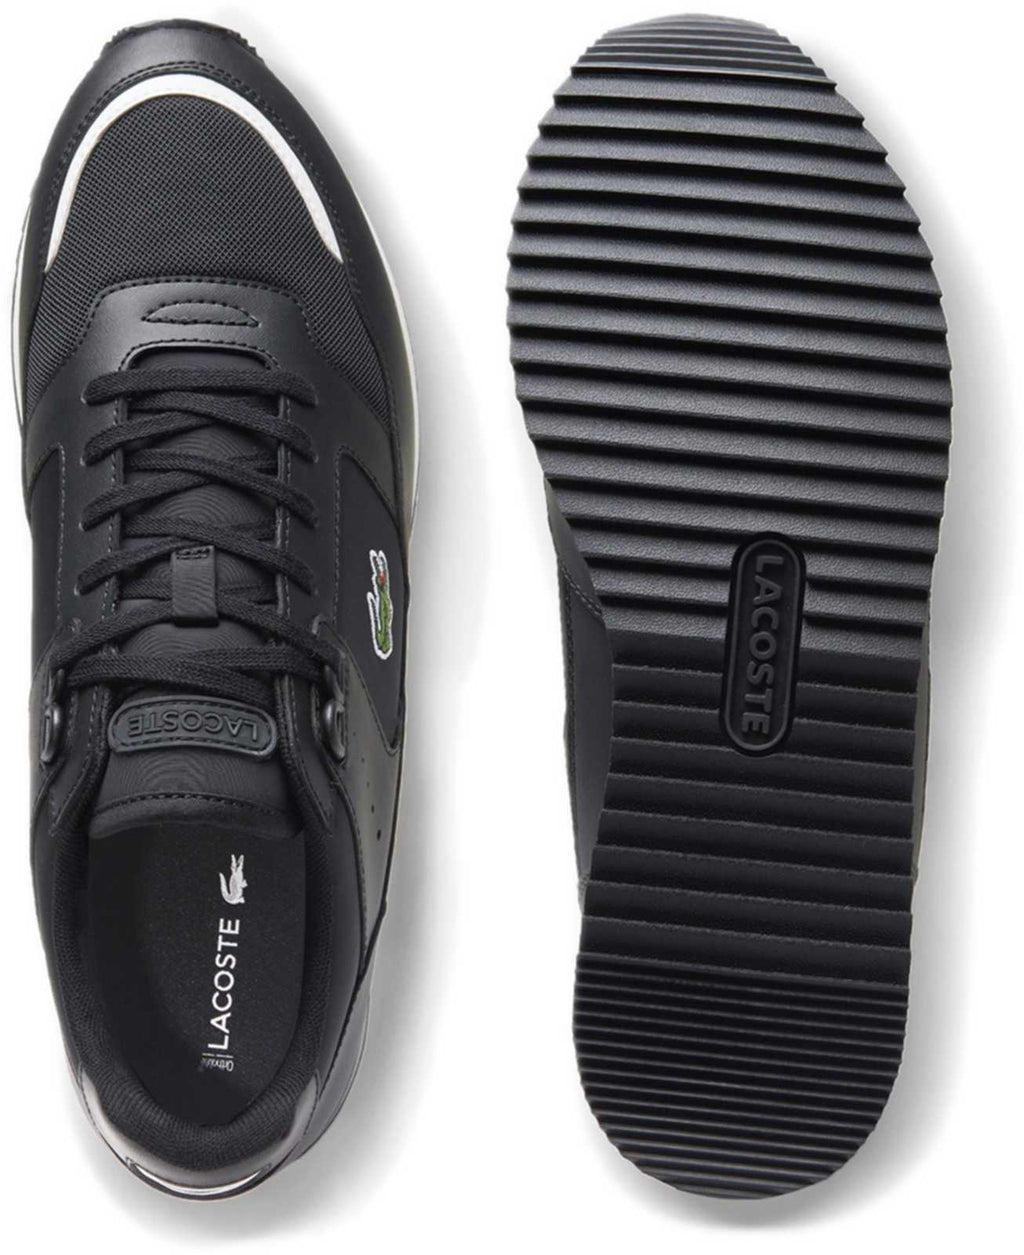 Lacoste Partner Piste 120 SMA Trainers Black